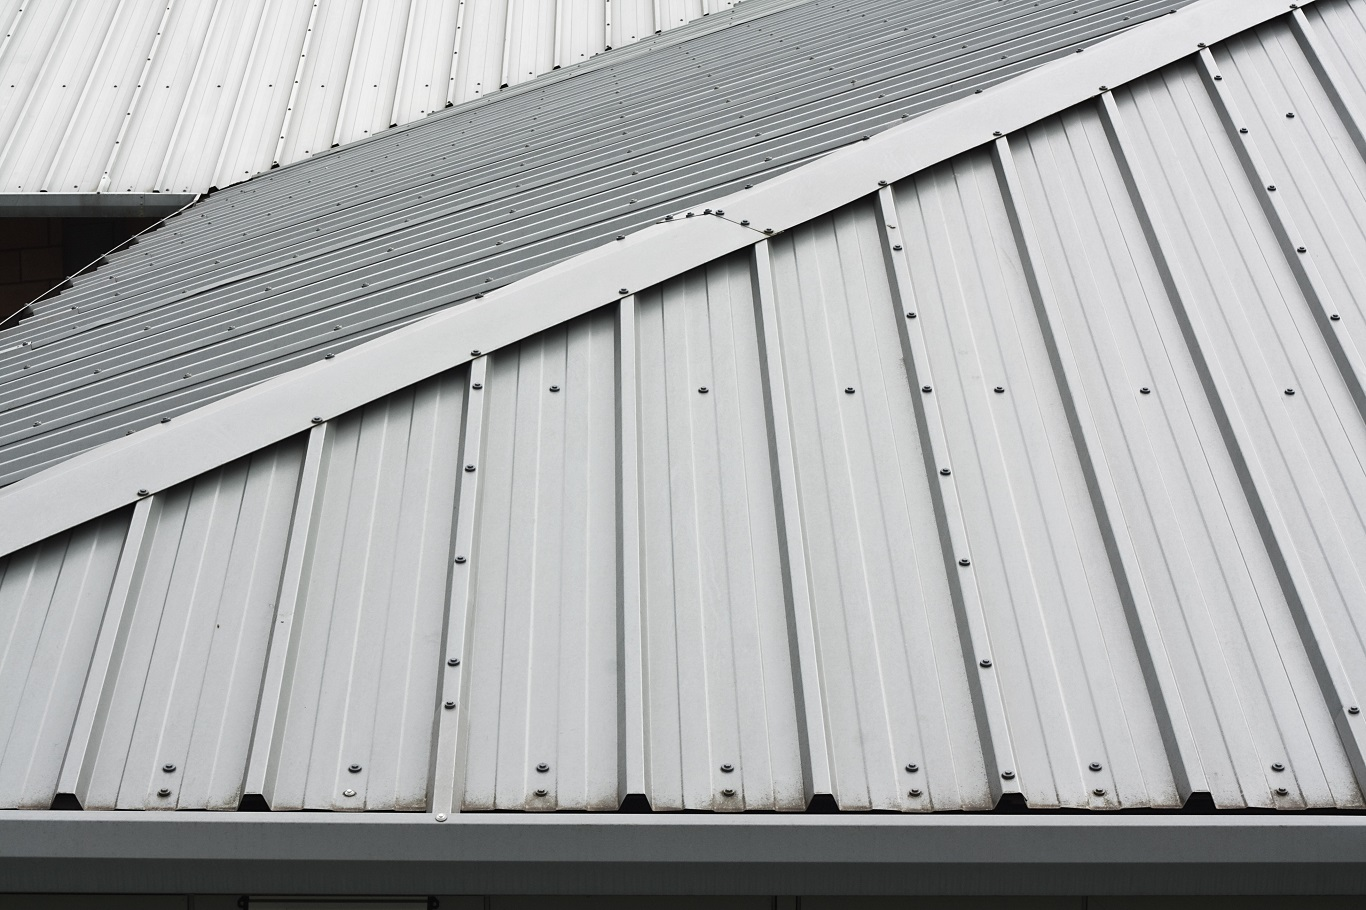 Cheap Corrugated Metal Roofing Colors